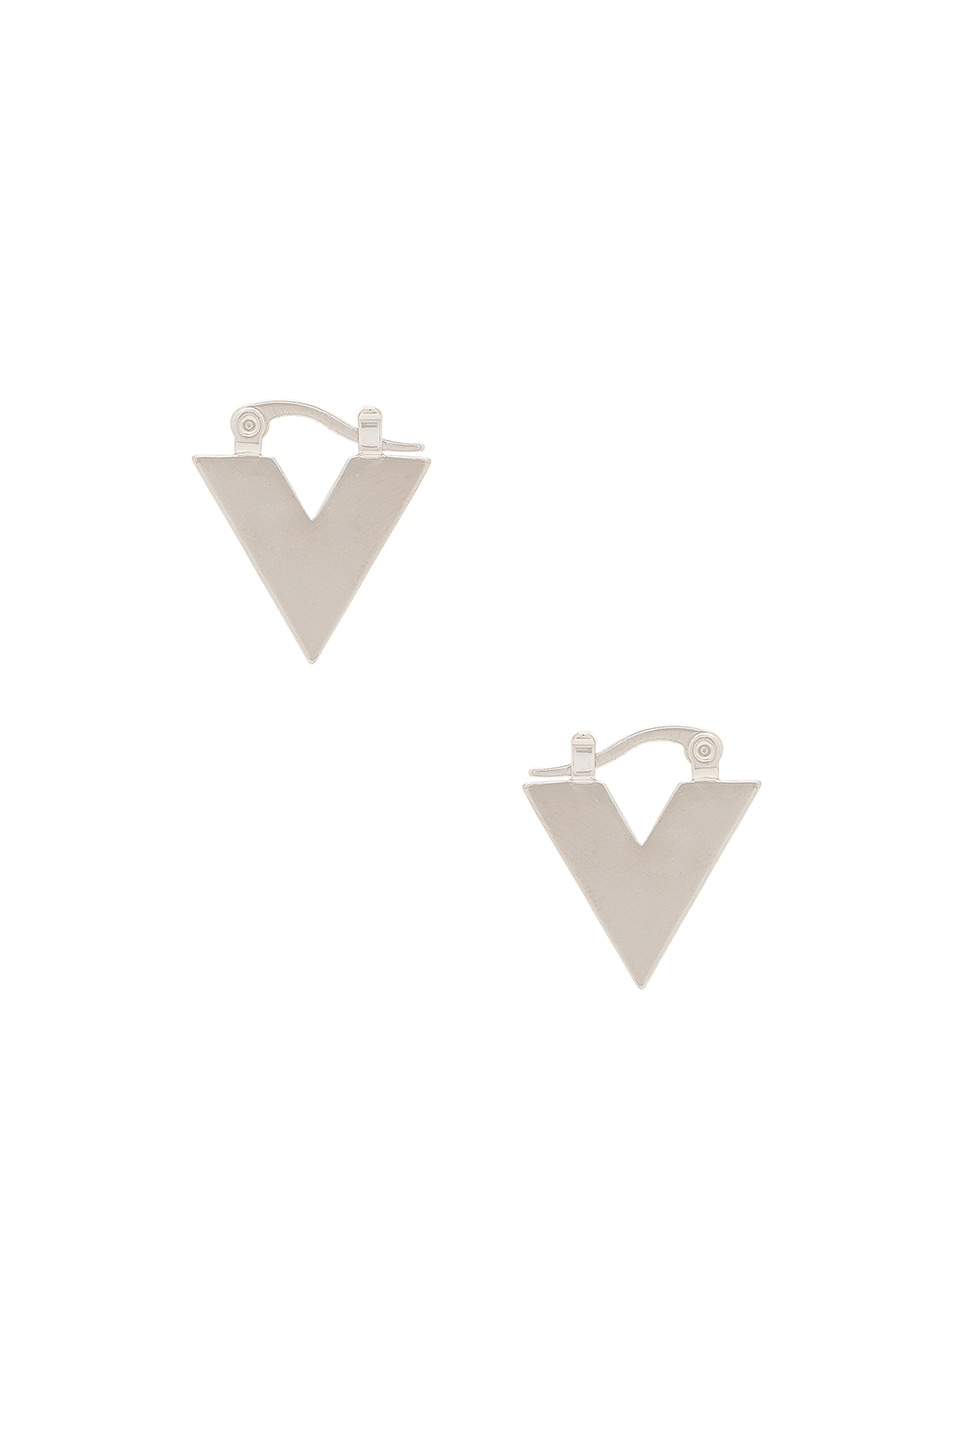 V Huggie Earrings by Michelle Campbell